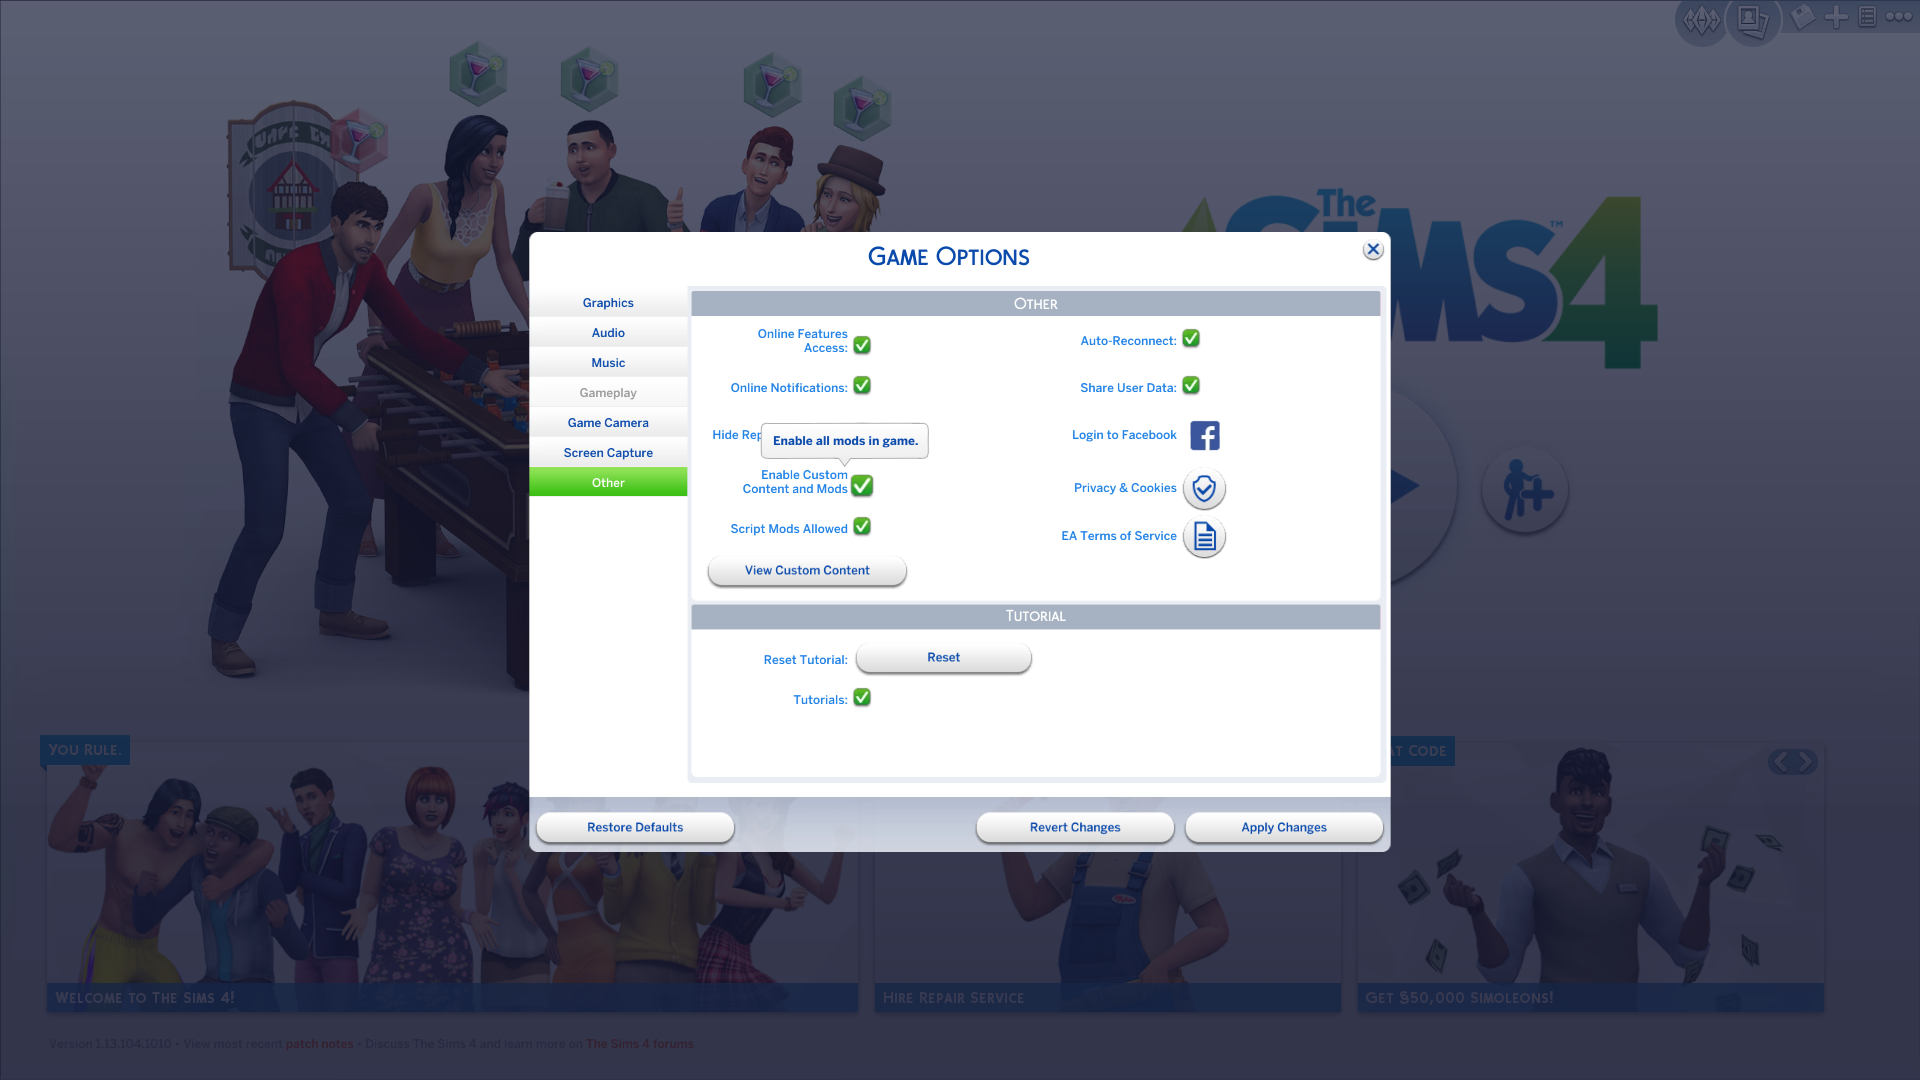 The Sims 4: Mods and Custom Content Auto-Disabled With New